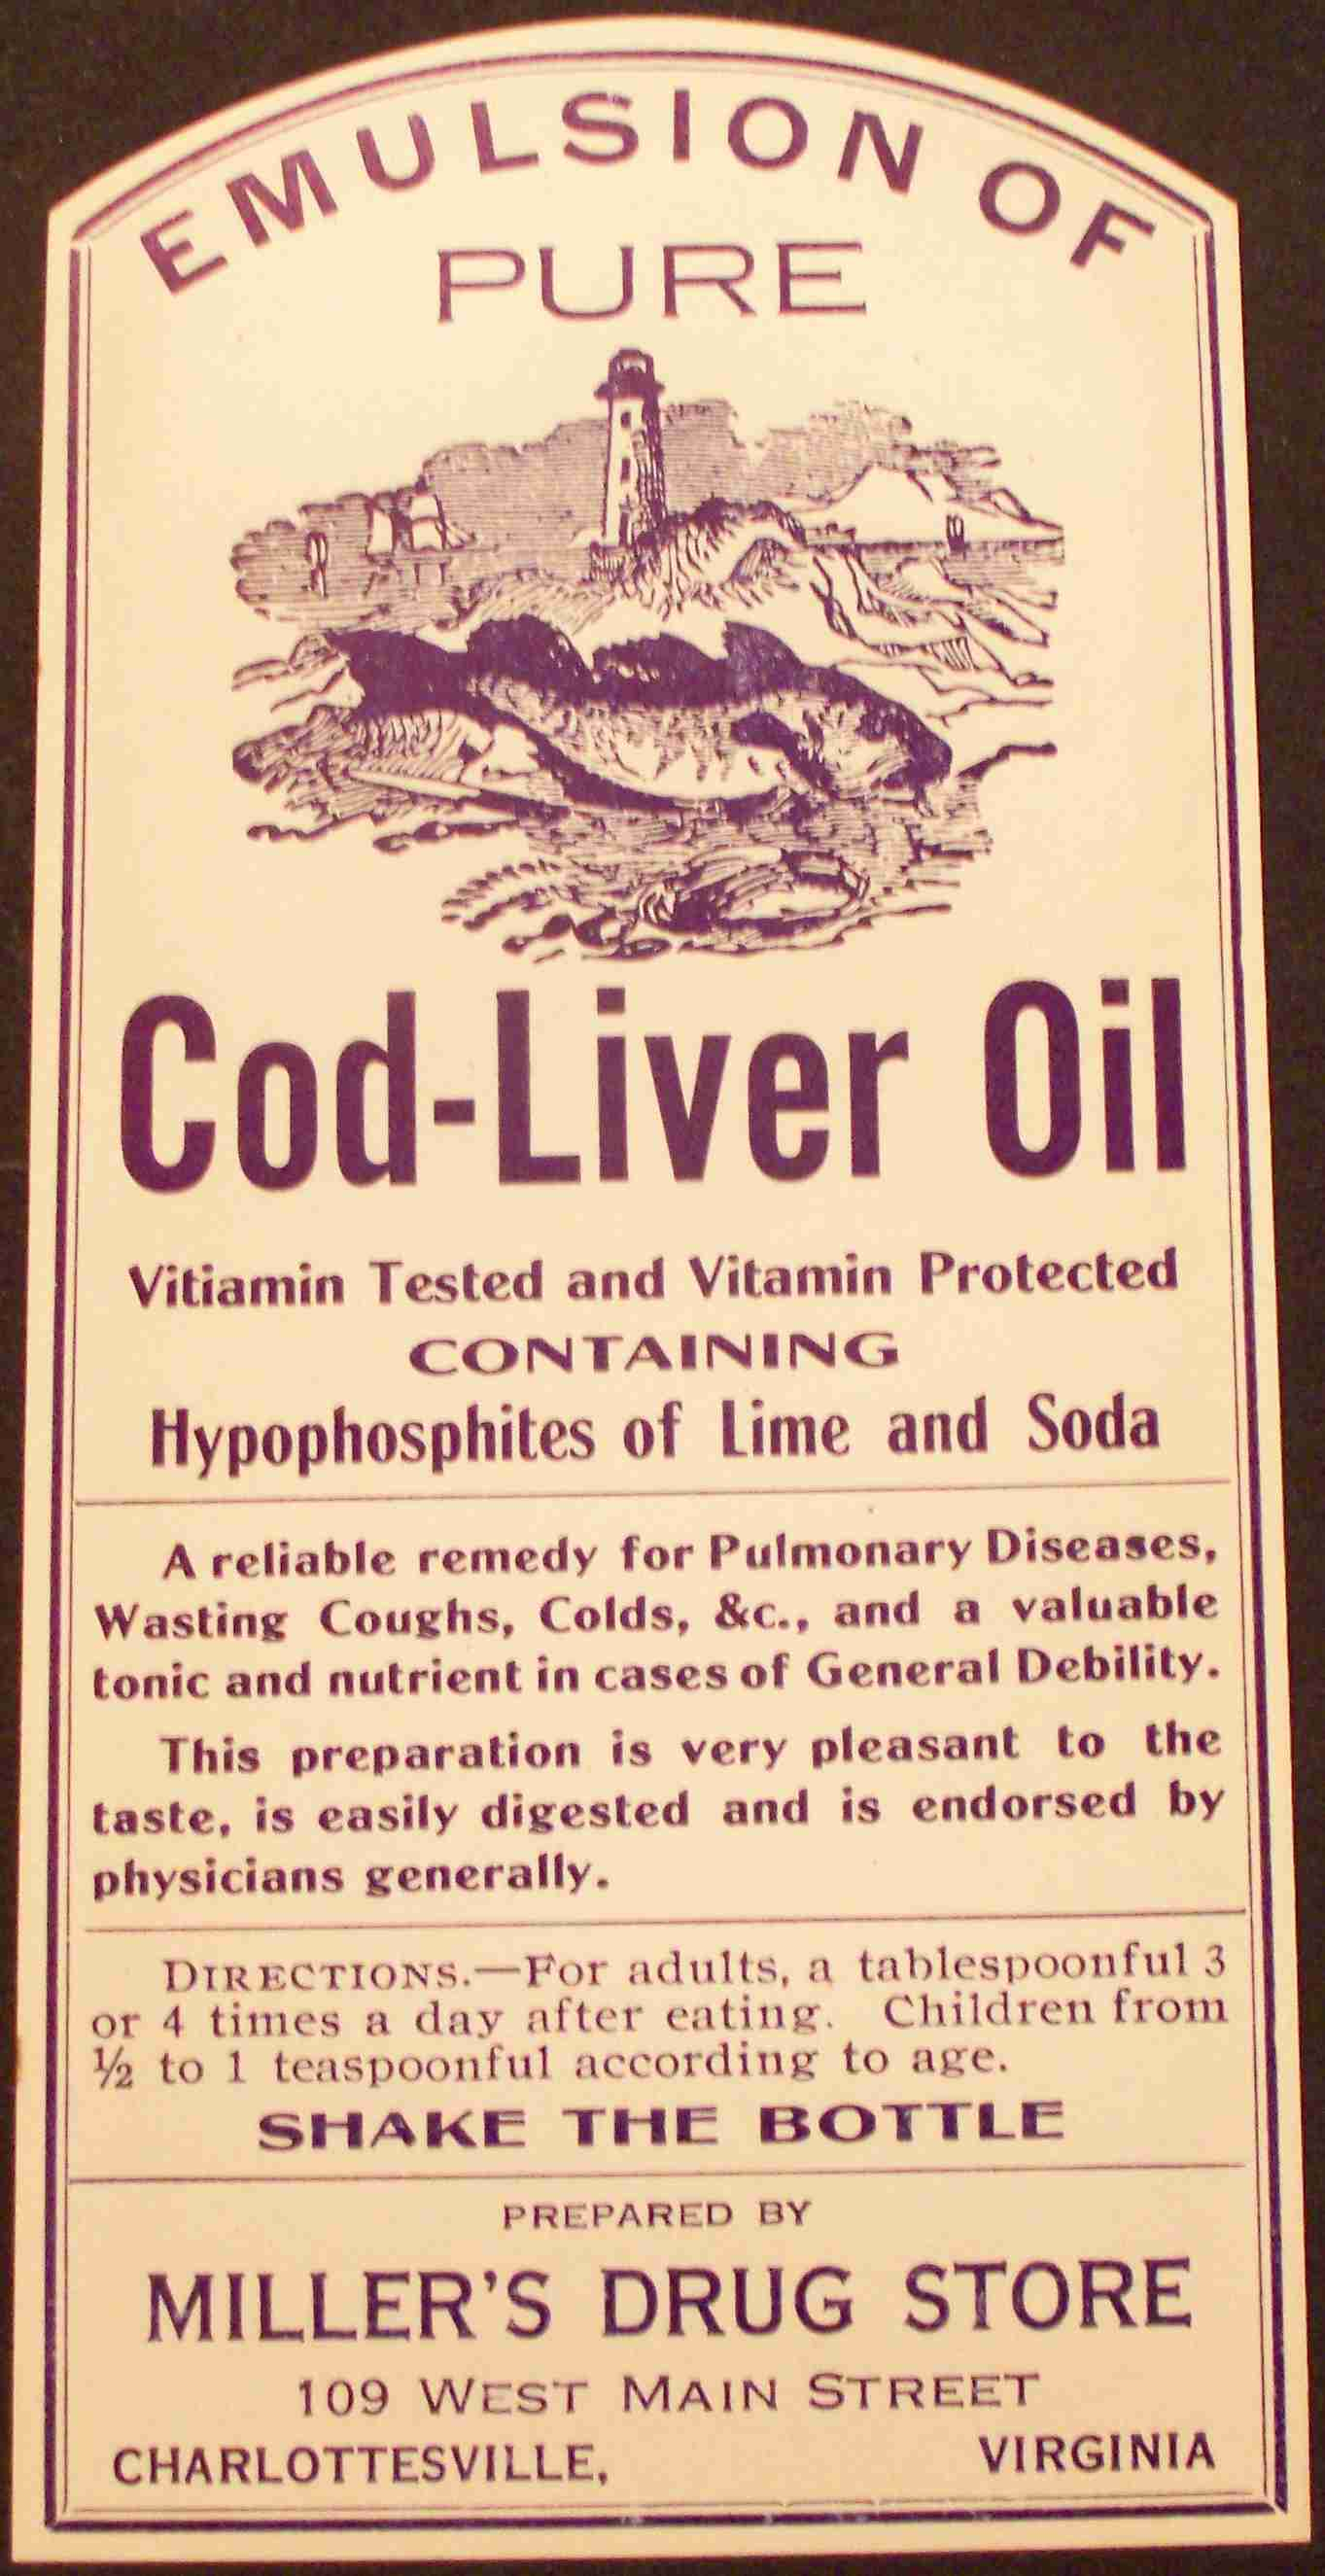 Vitamin D and Cod Liver Oil